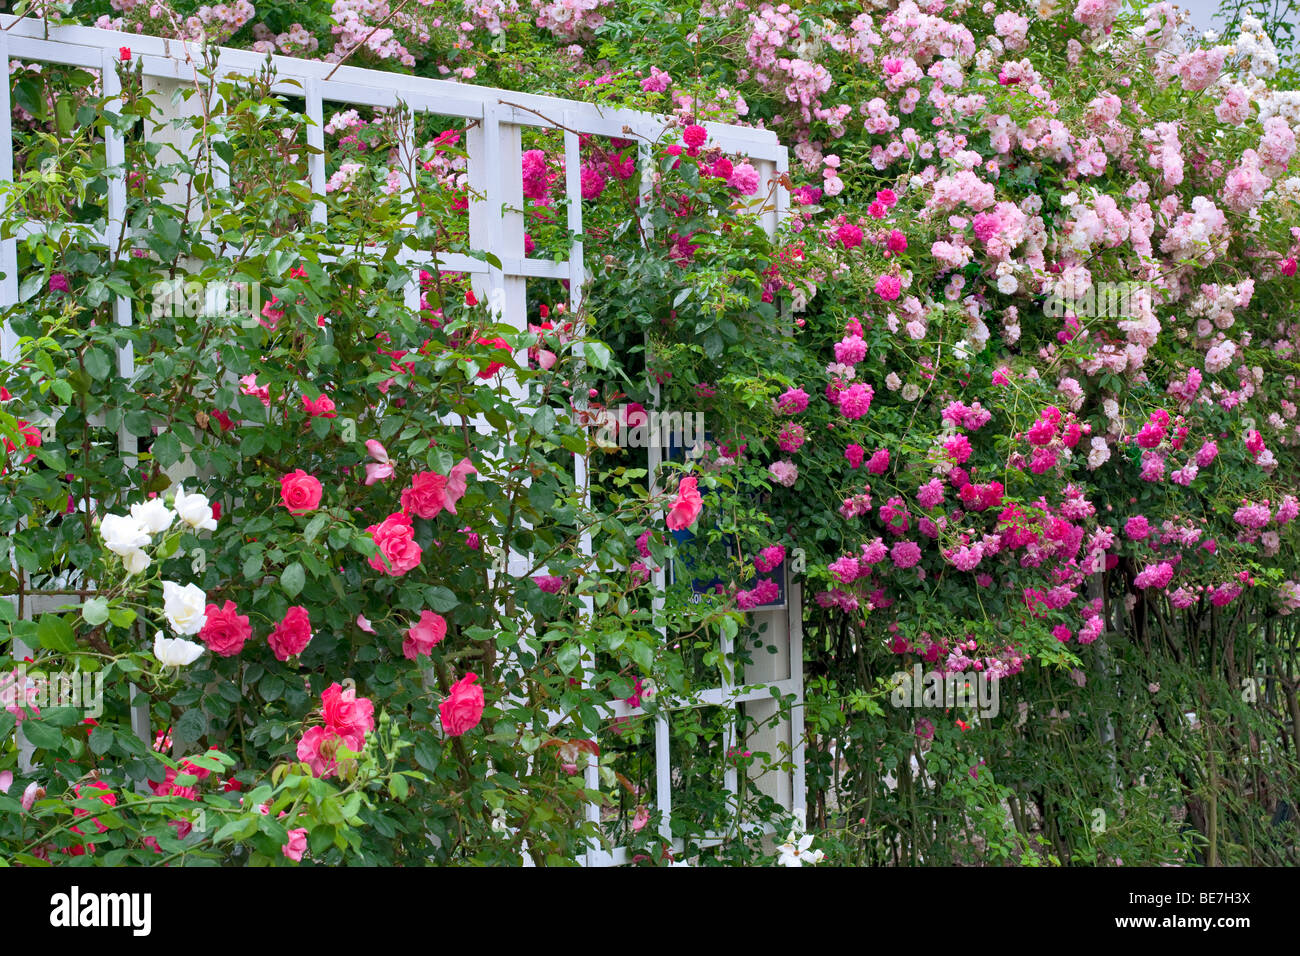 Climbing roses on arbor at Heirloom Gardens, St. Paul, Oregon - Stock Image